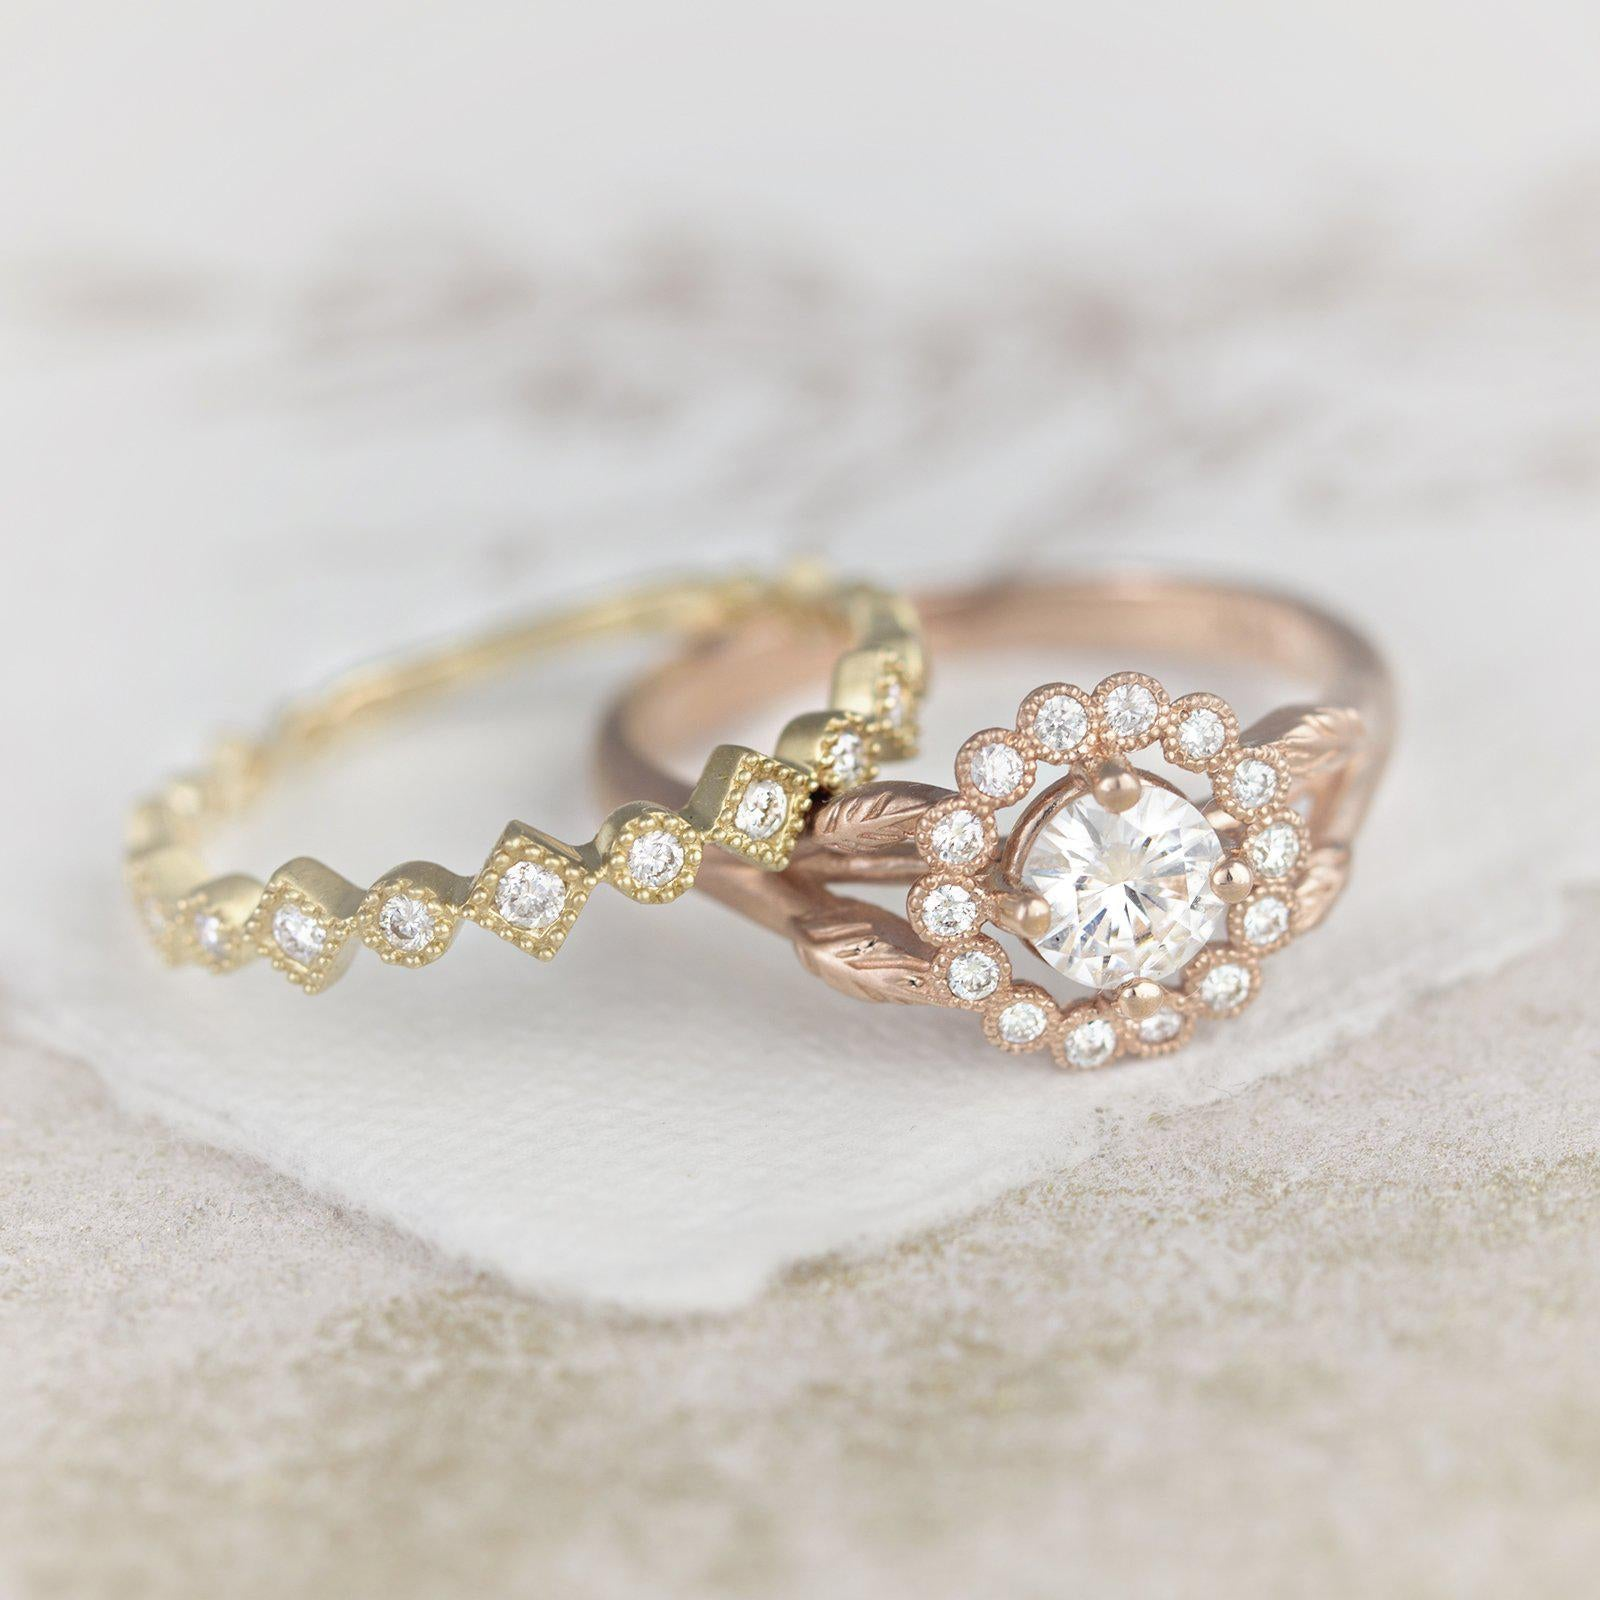 Rose gold vintage engagement rings